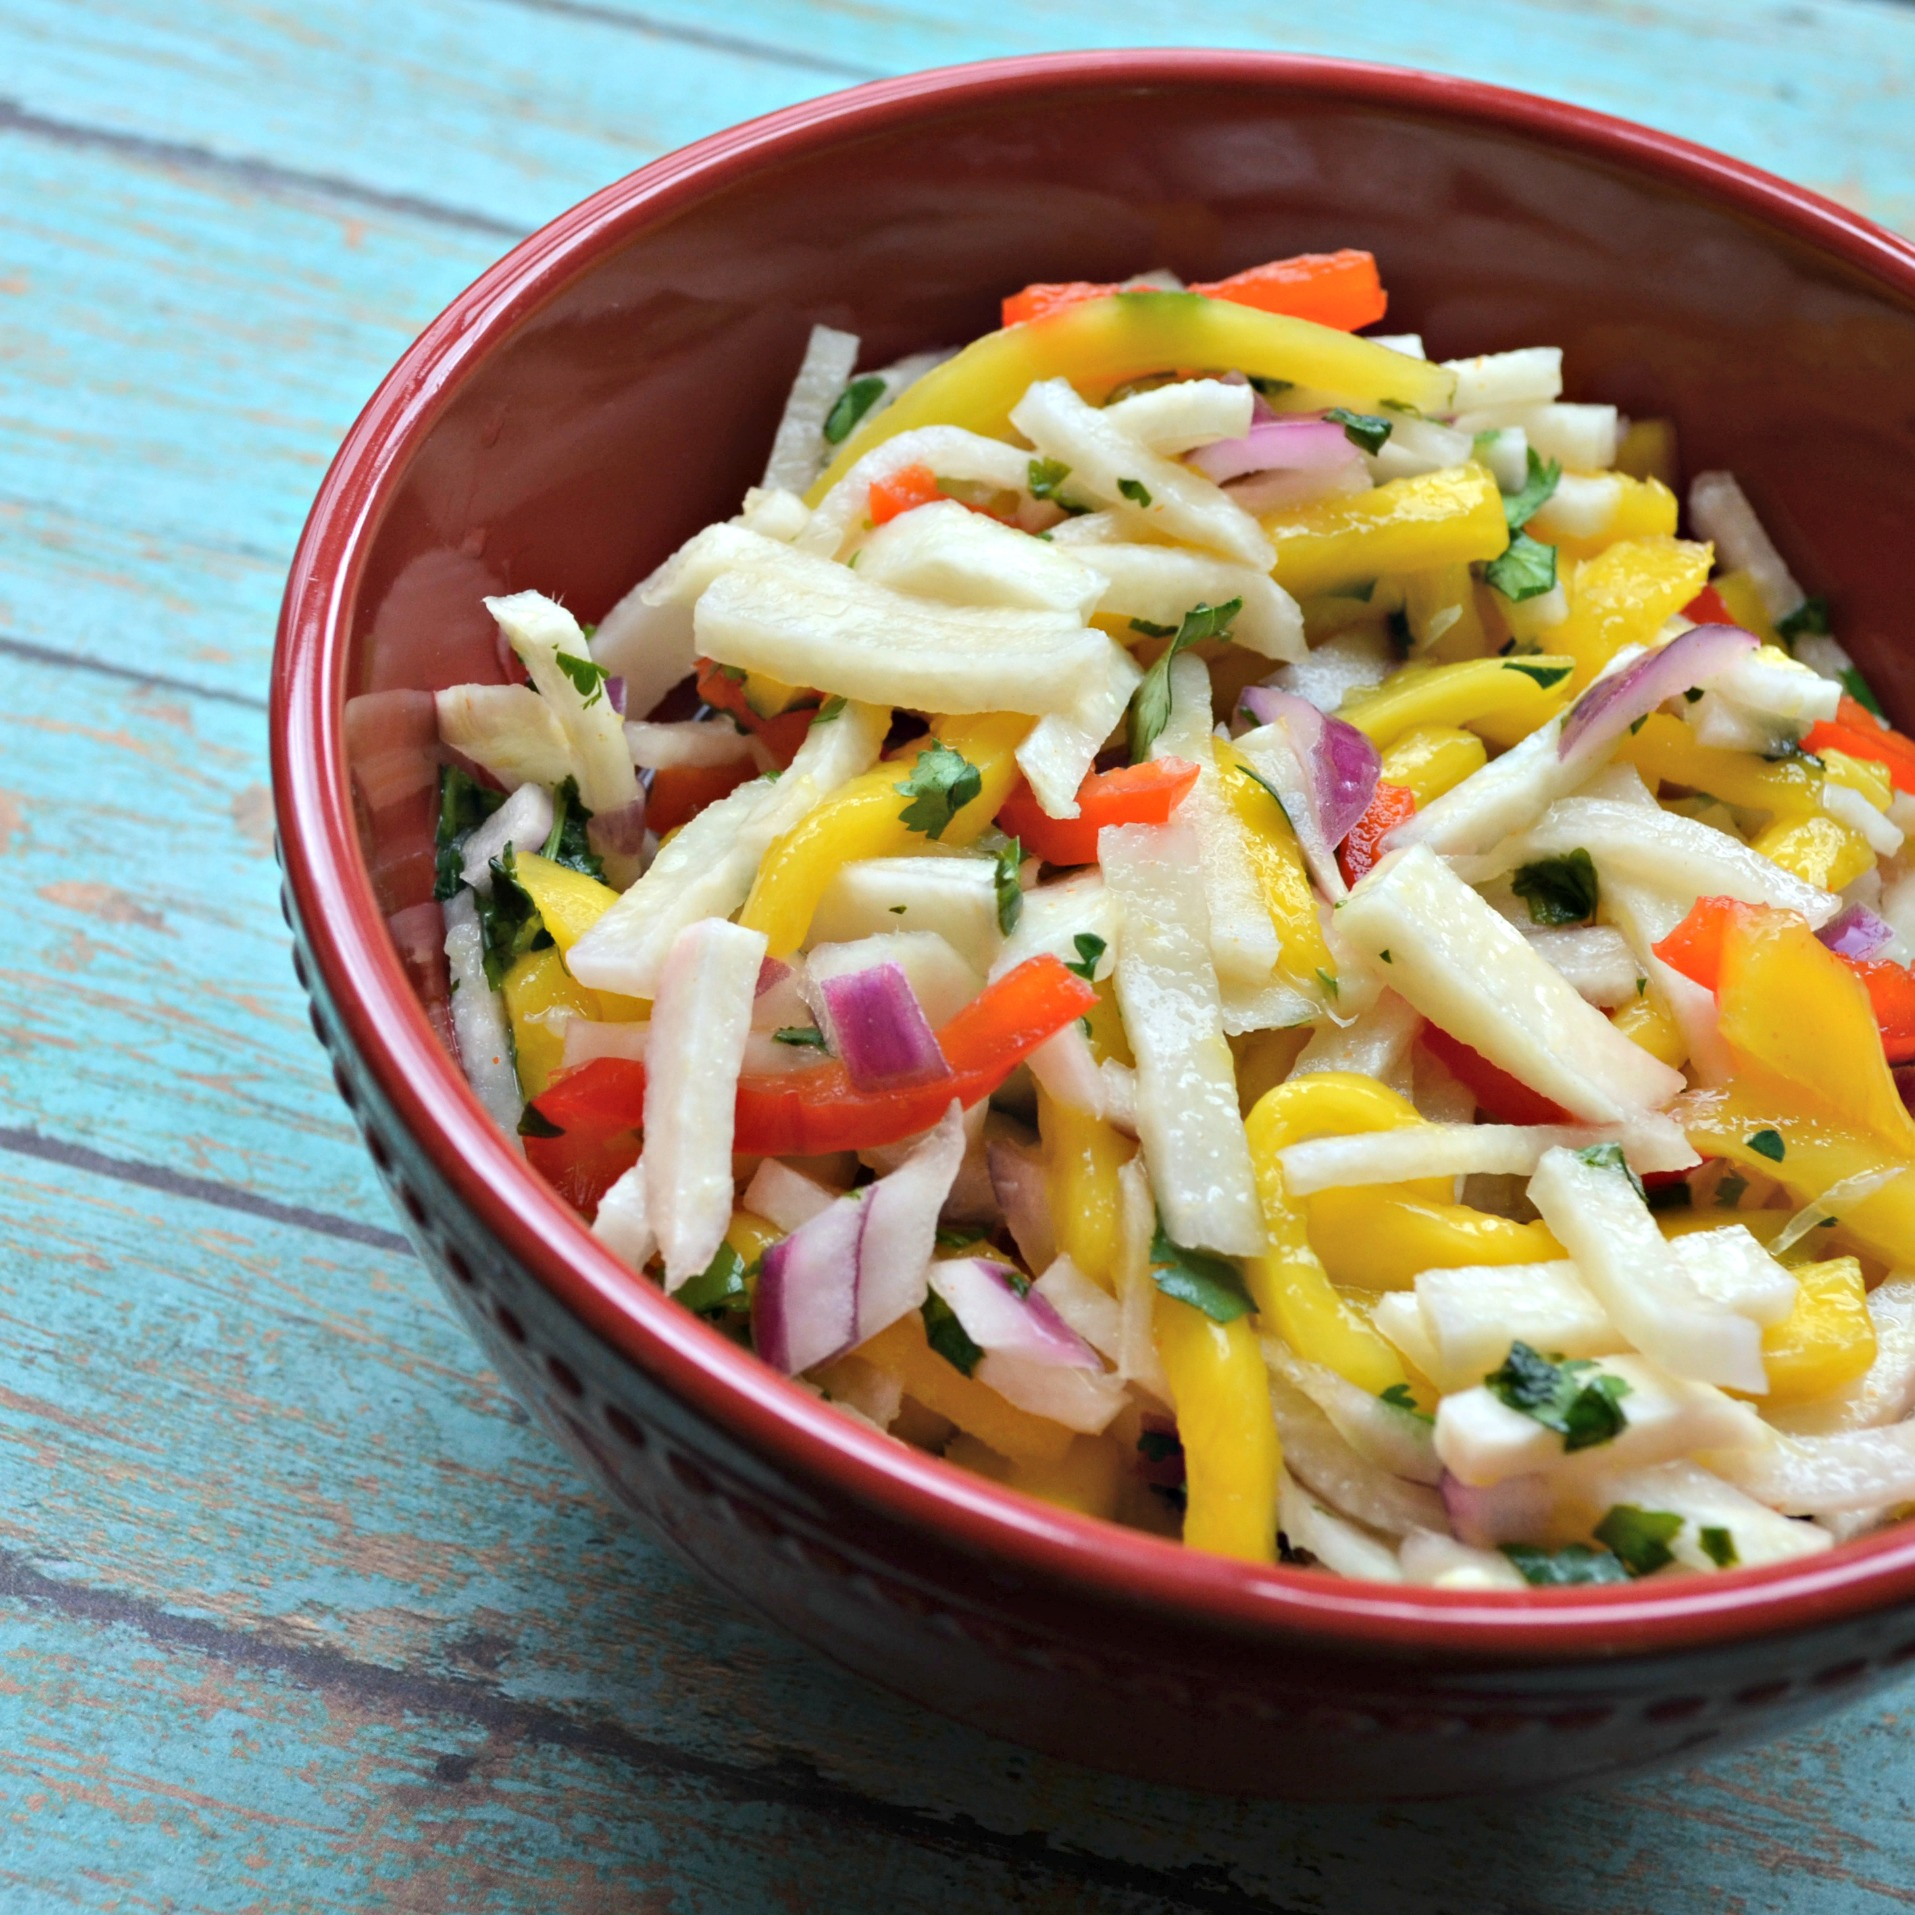 Jicama Mango Salad with Cilantro and Lime in a red bowl